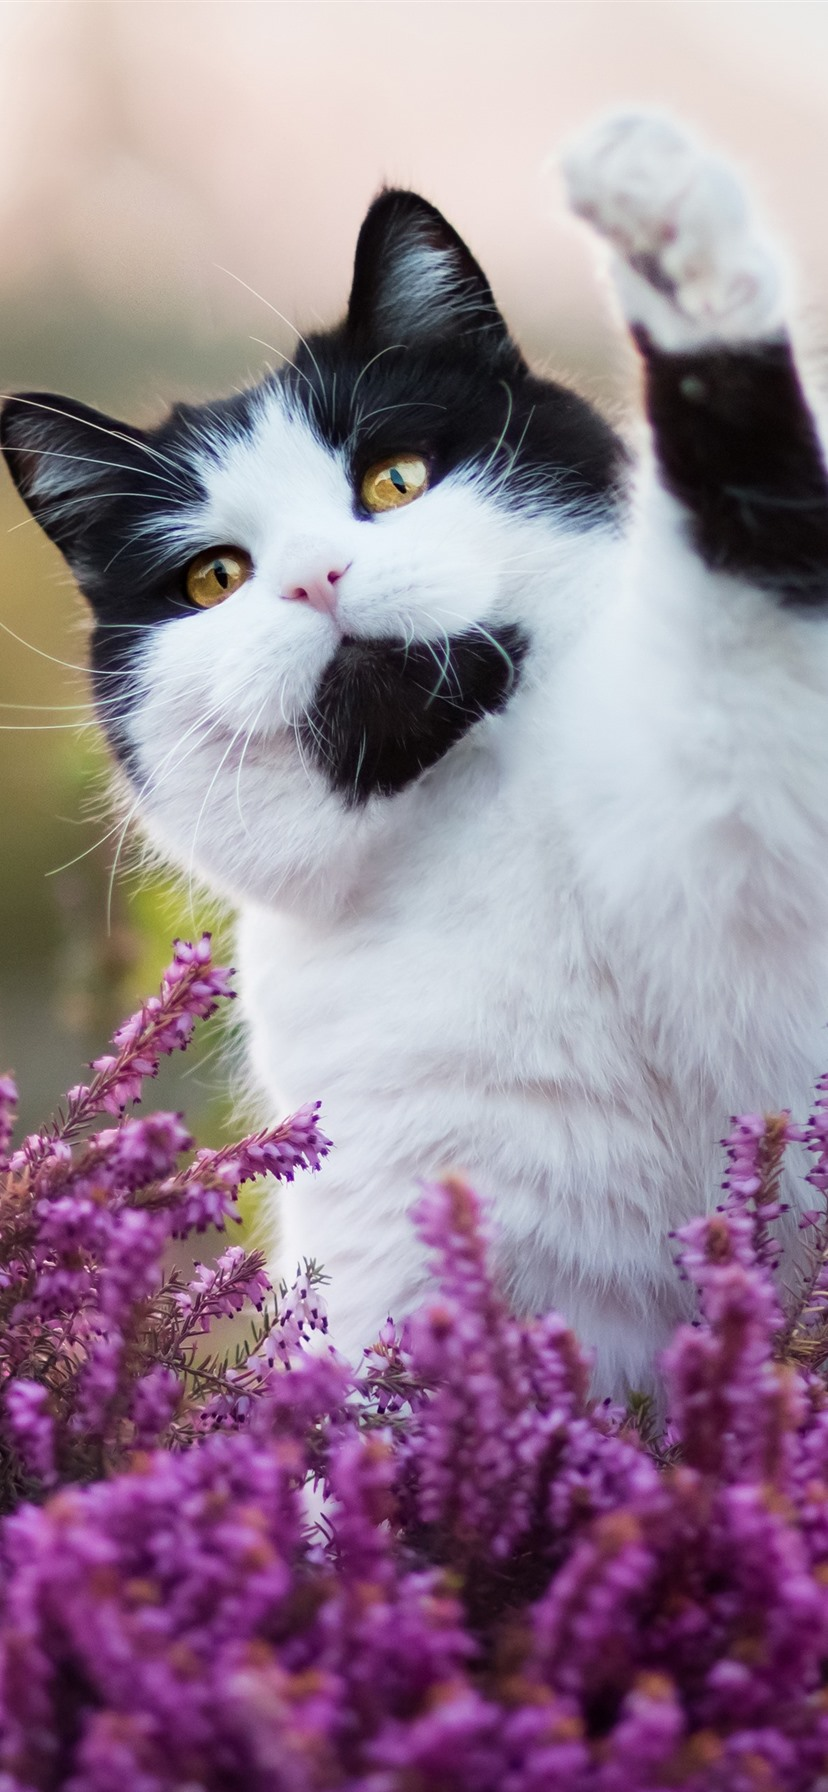 Wallpaper Cute Cat Pink Flowers Hello Funny Animal 3840x2160 Uhd 4k Picture Image